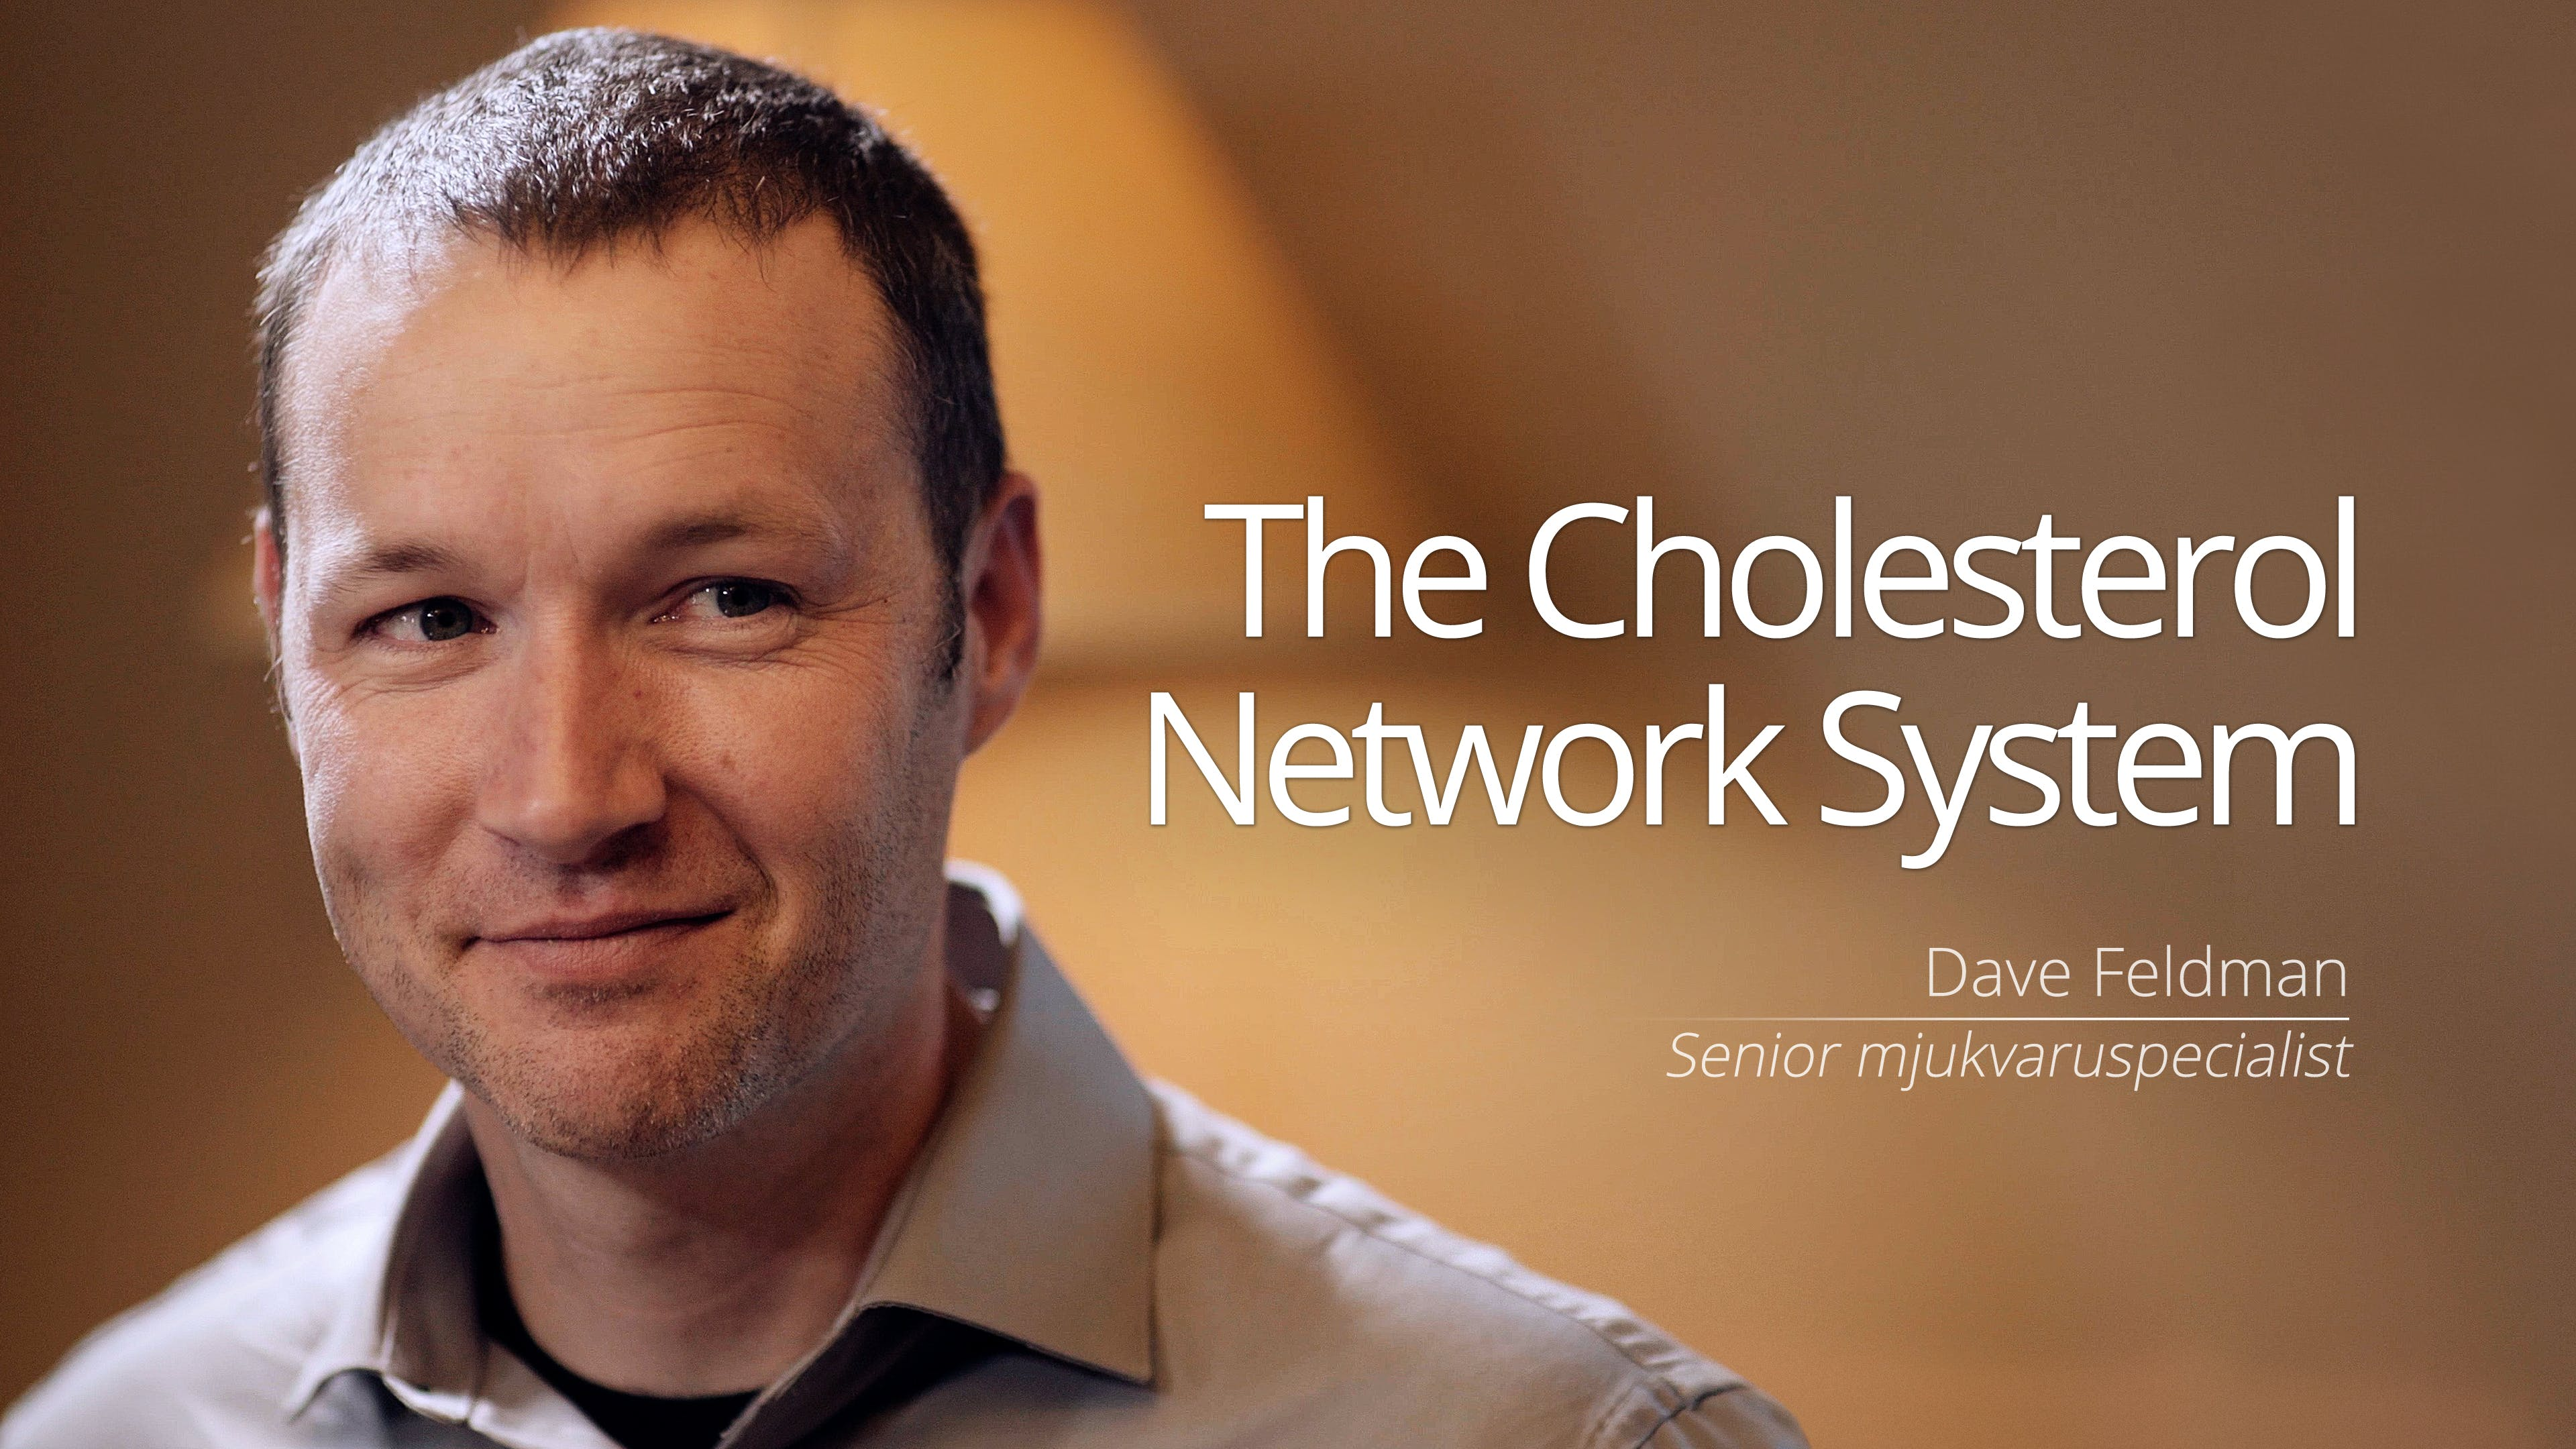 The Cholesterol Network System